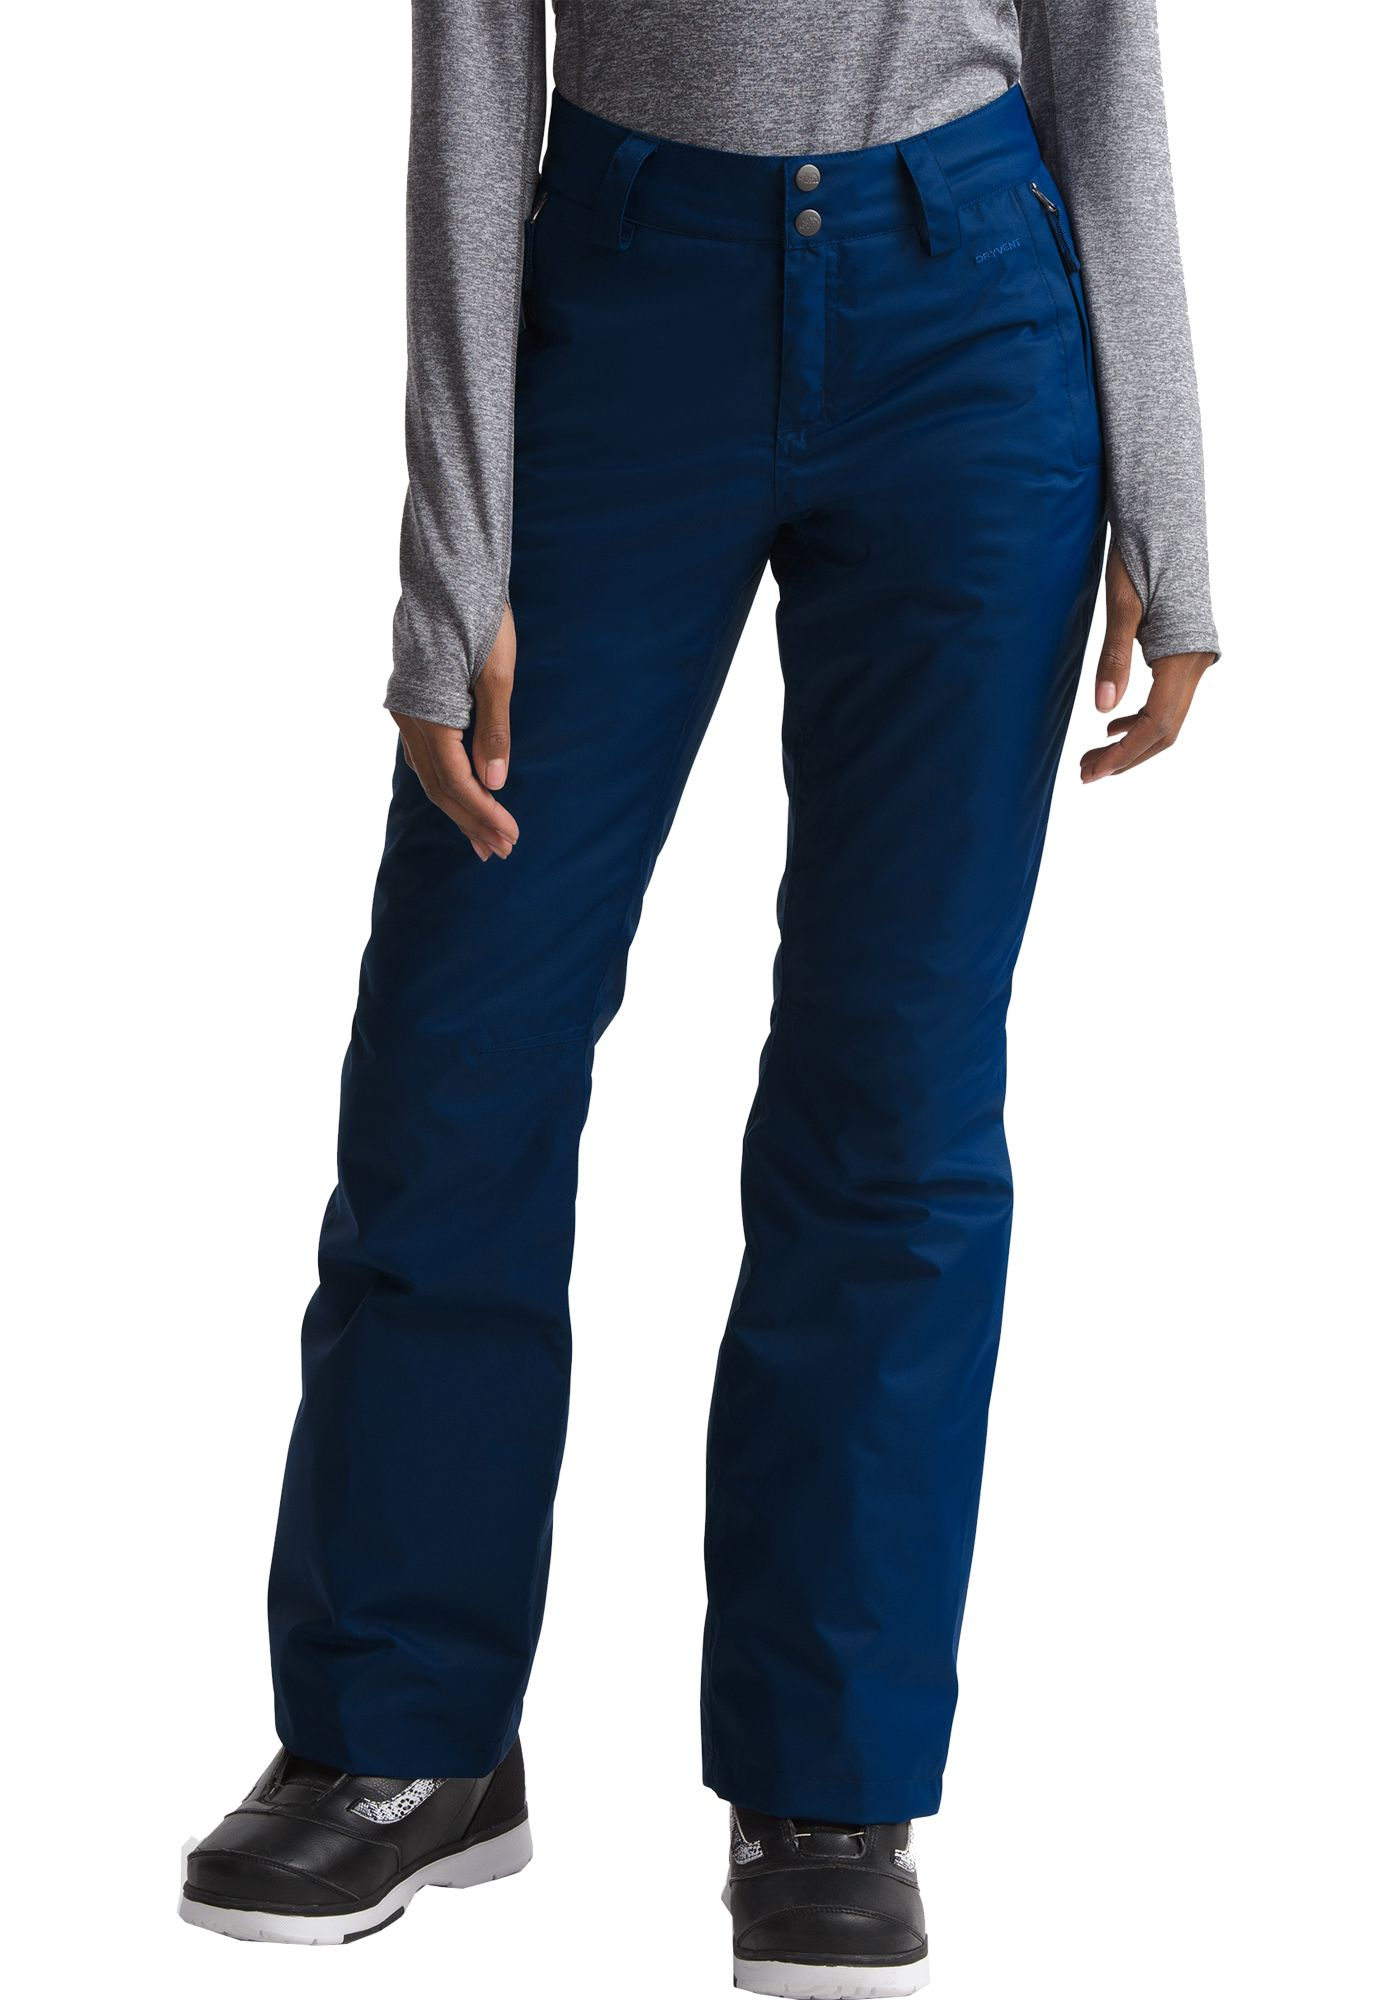 The North Face Women's Sally Insulated Pants